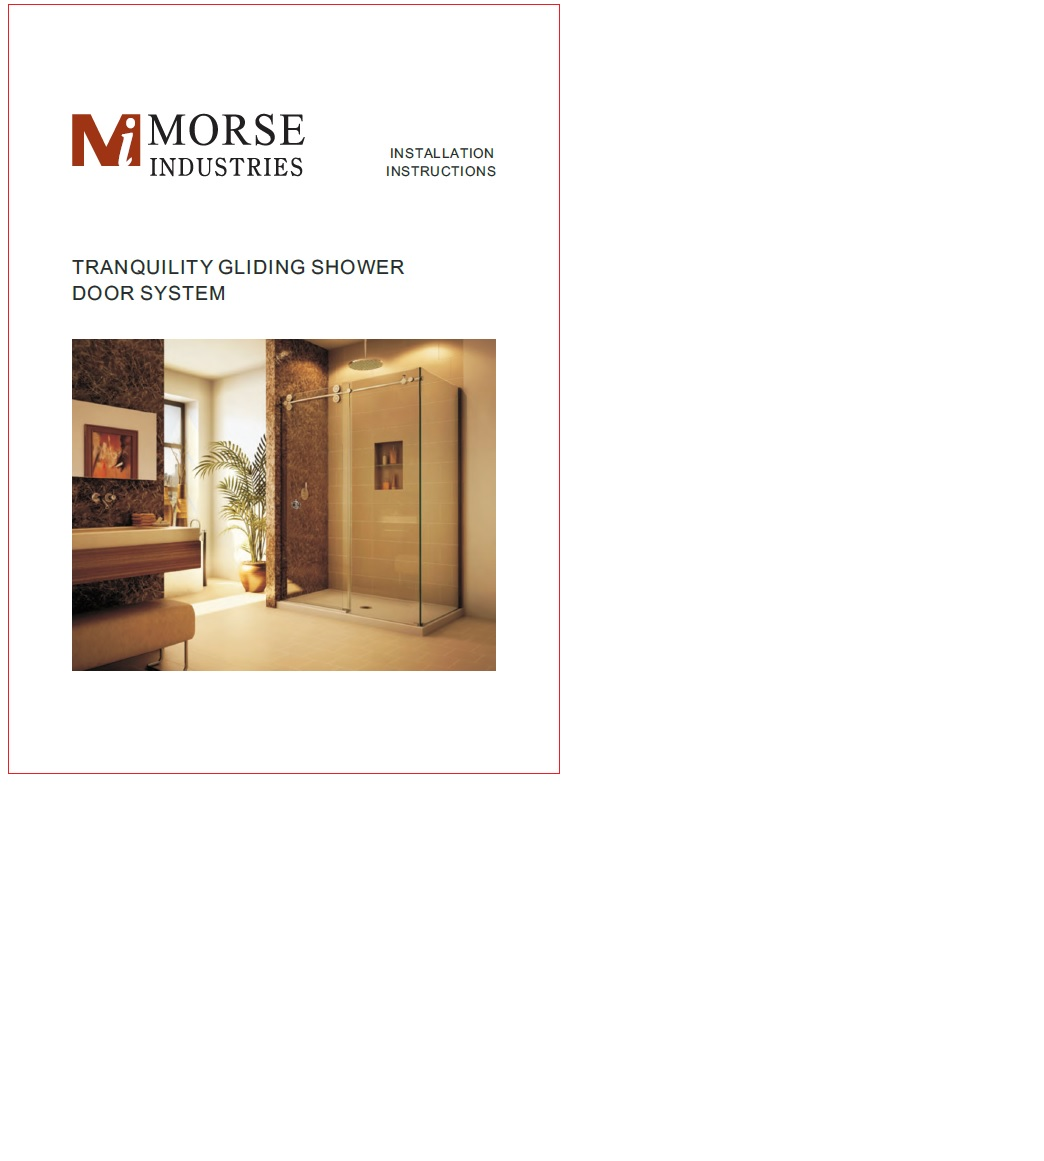 Tranquility Gliding Shower System Instructions